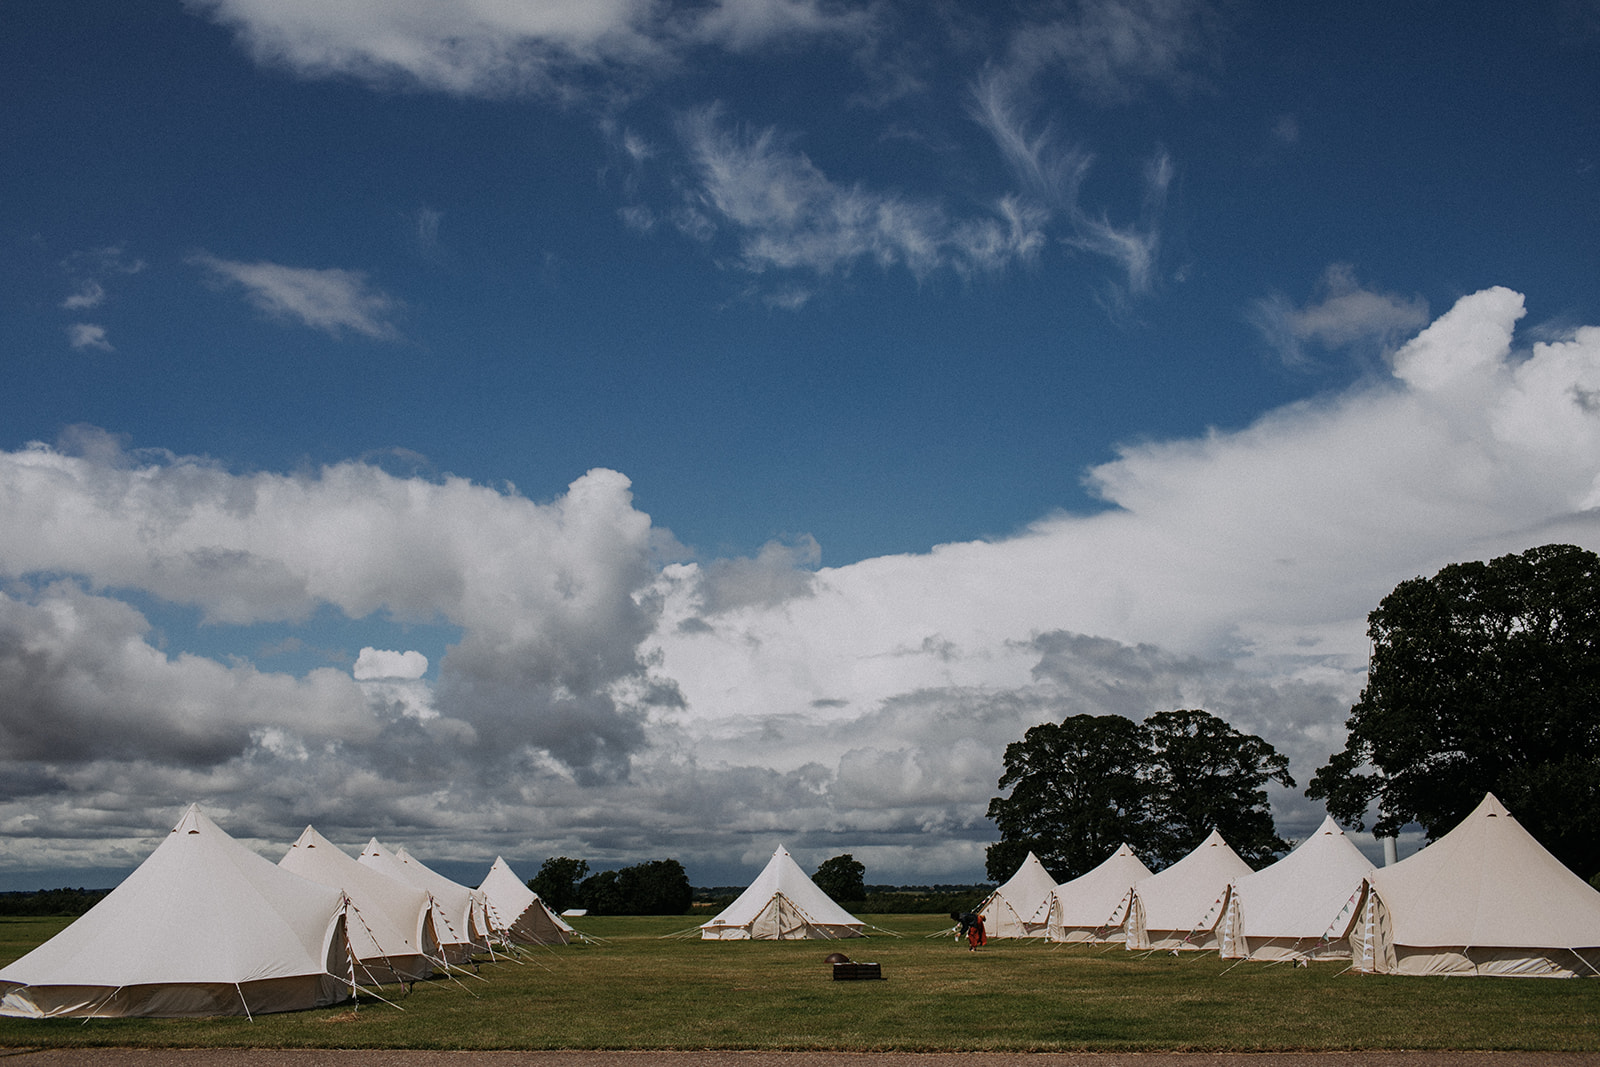 Glamping Bell Tents at Cattows Farm Wedding